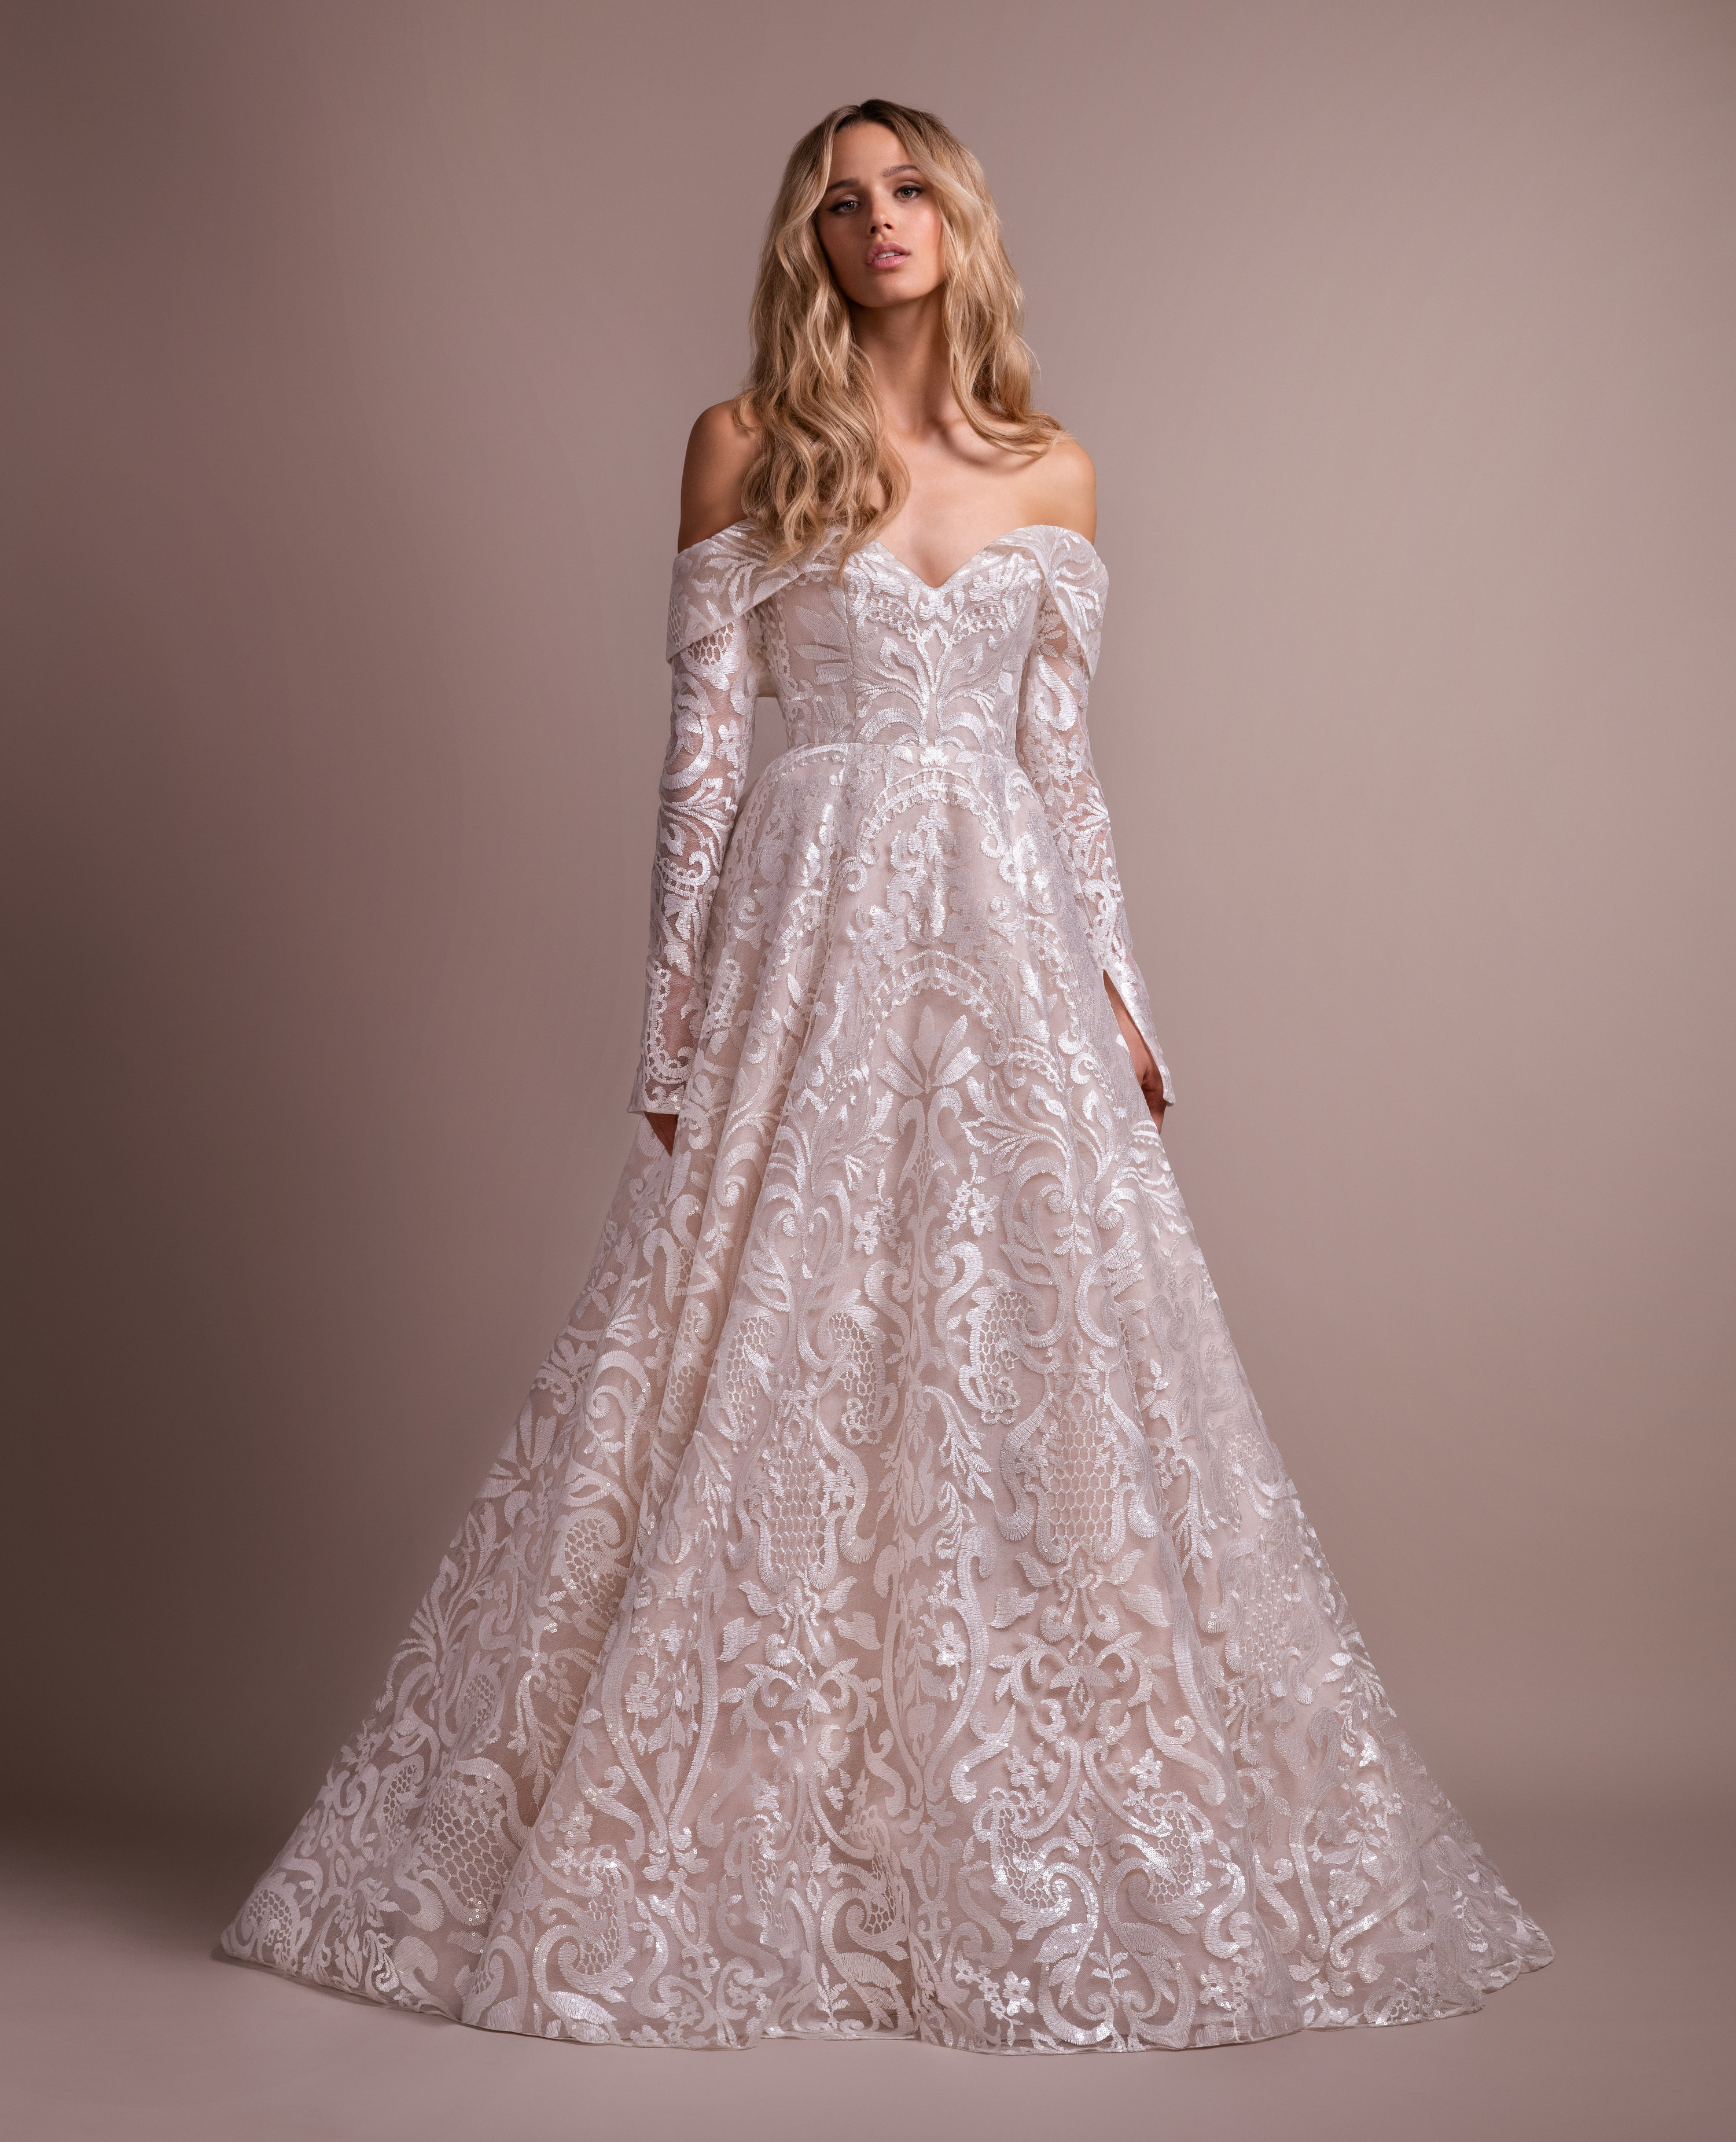 Wedding Gown Stores Nyc: Lace Wedding Dress With Removable Off The Shoulder Long